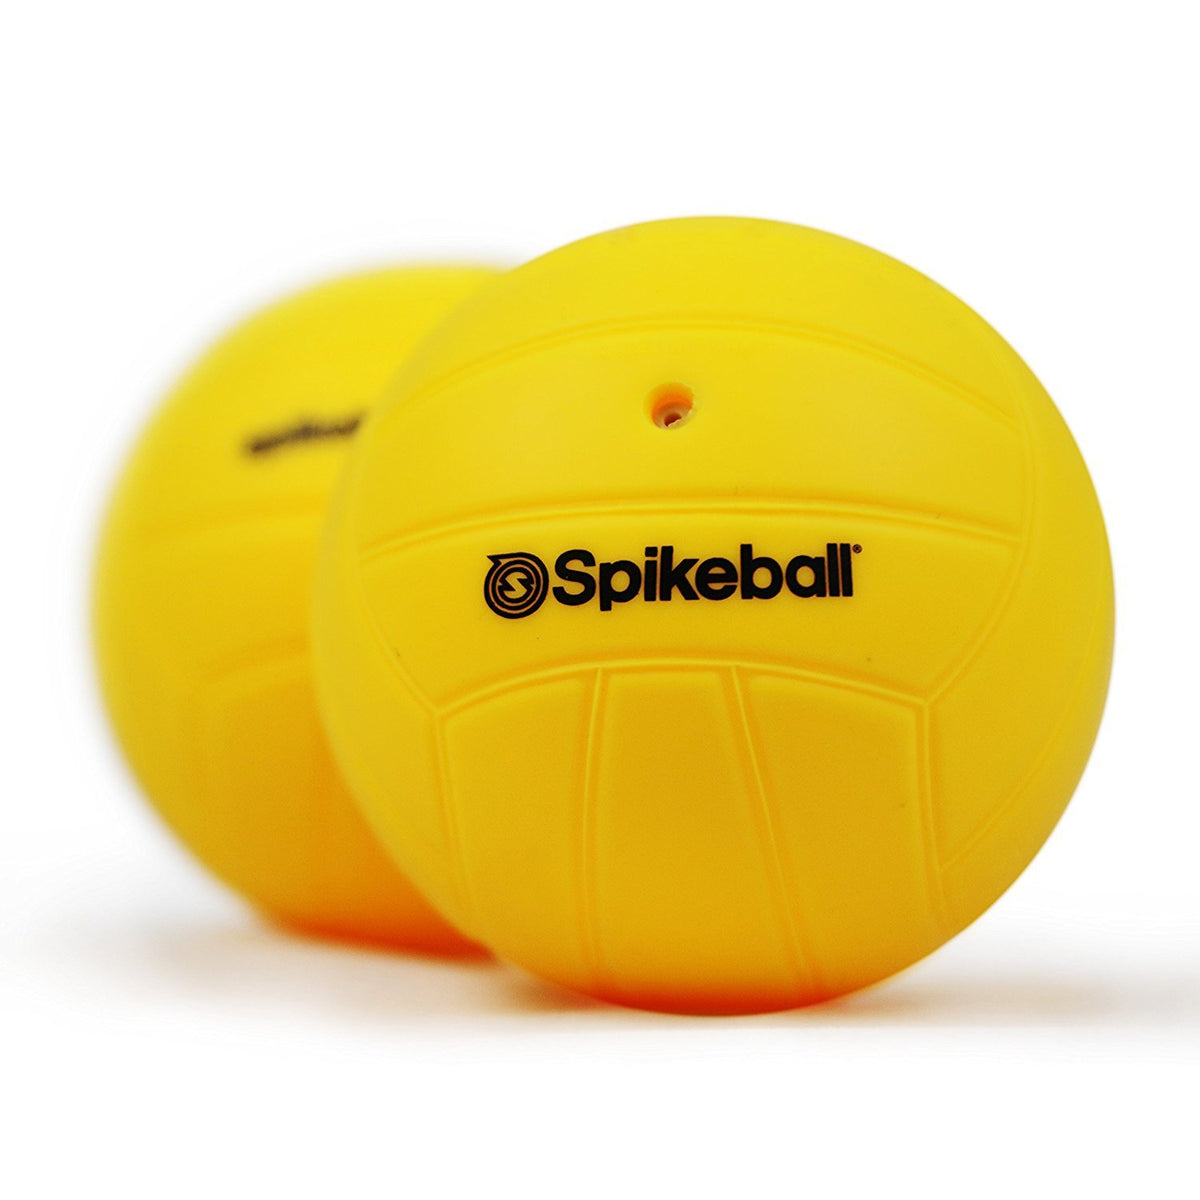 Spikeball Replacement Ball canada toronto ontario montreal kingston ottawa hamilton london kitchener waterloo sports x-tra ball xtra extra